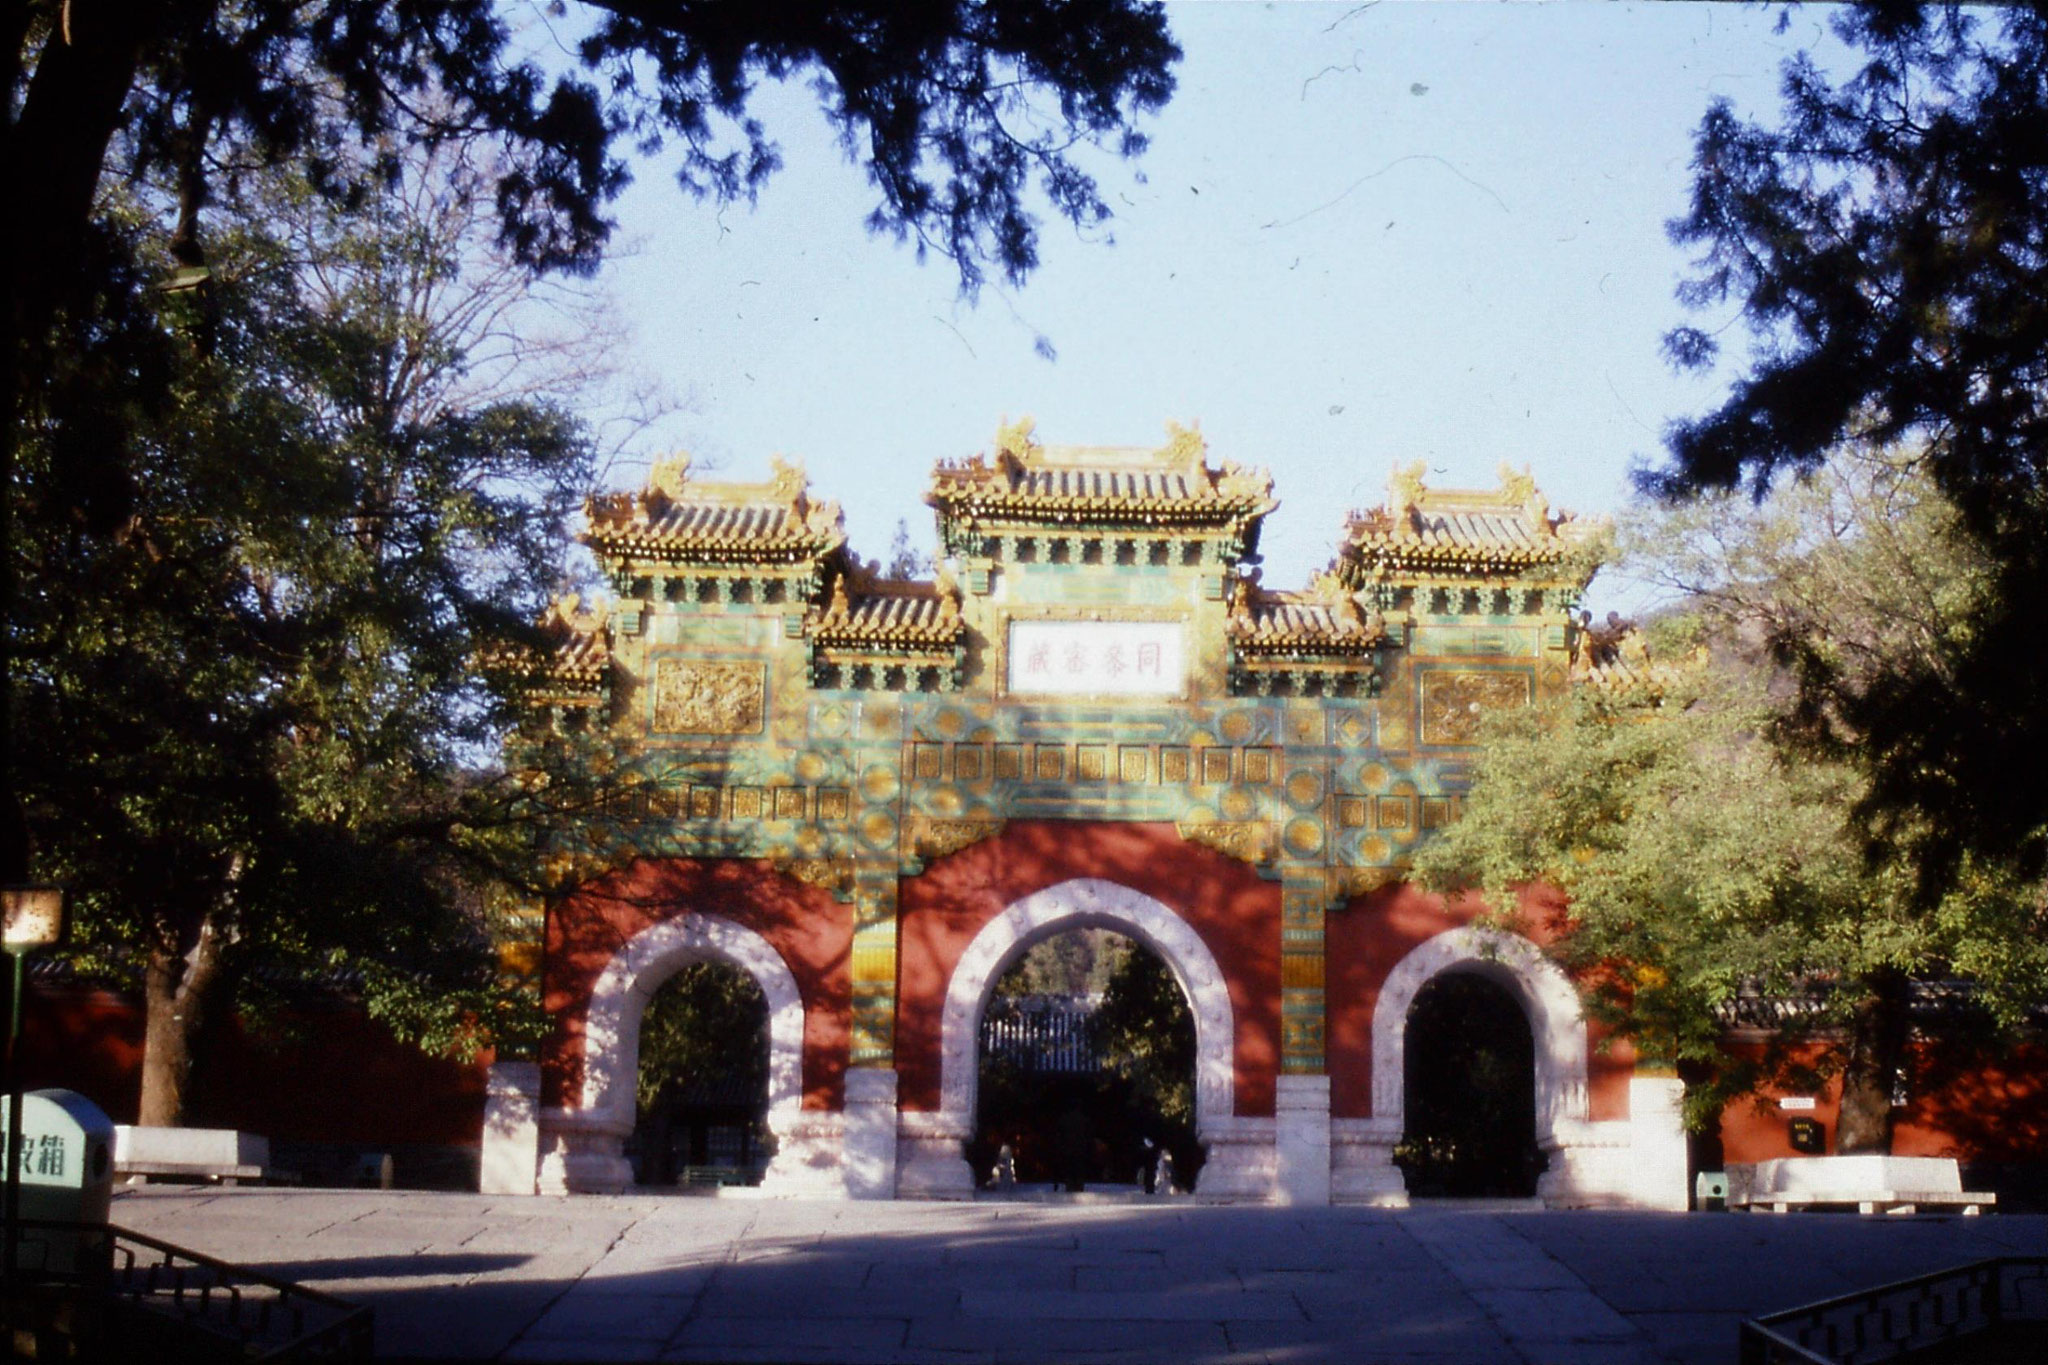 24/11/1988: 2: Xianshan Temple of Sleeping Buddha